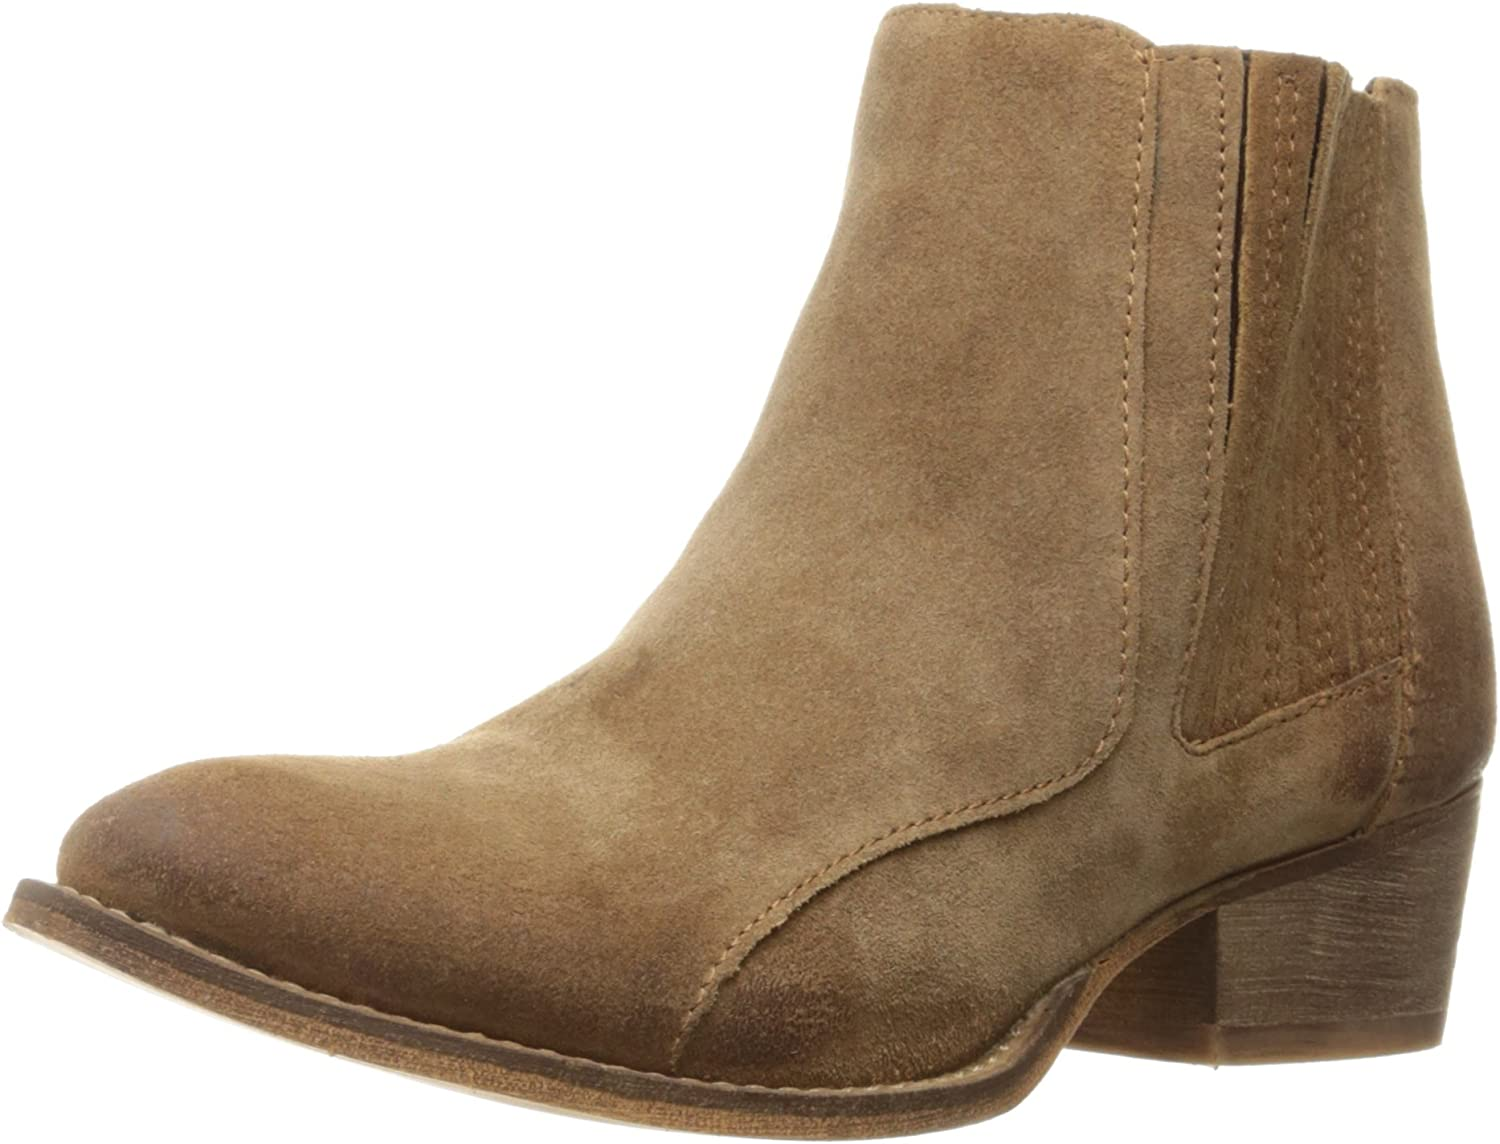 Charles by Charles David Womens Yale Ankle Bootie